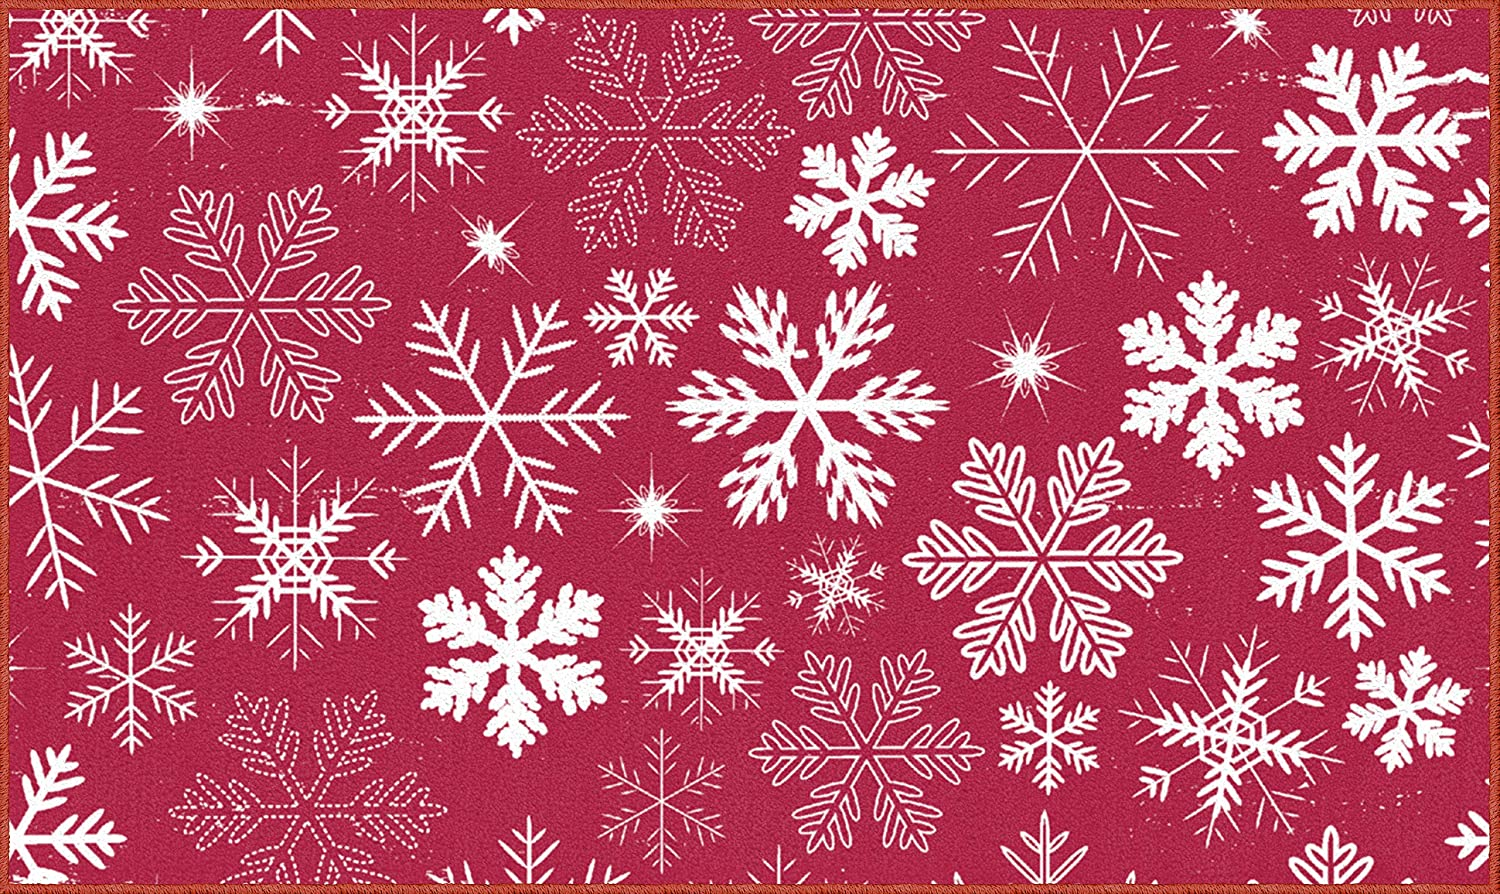 Mohawk Home Snowflakes Red Area Rug, 2'6x4'2